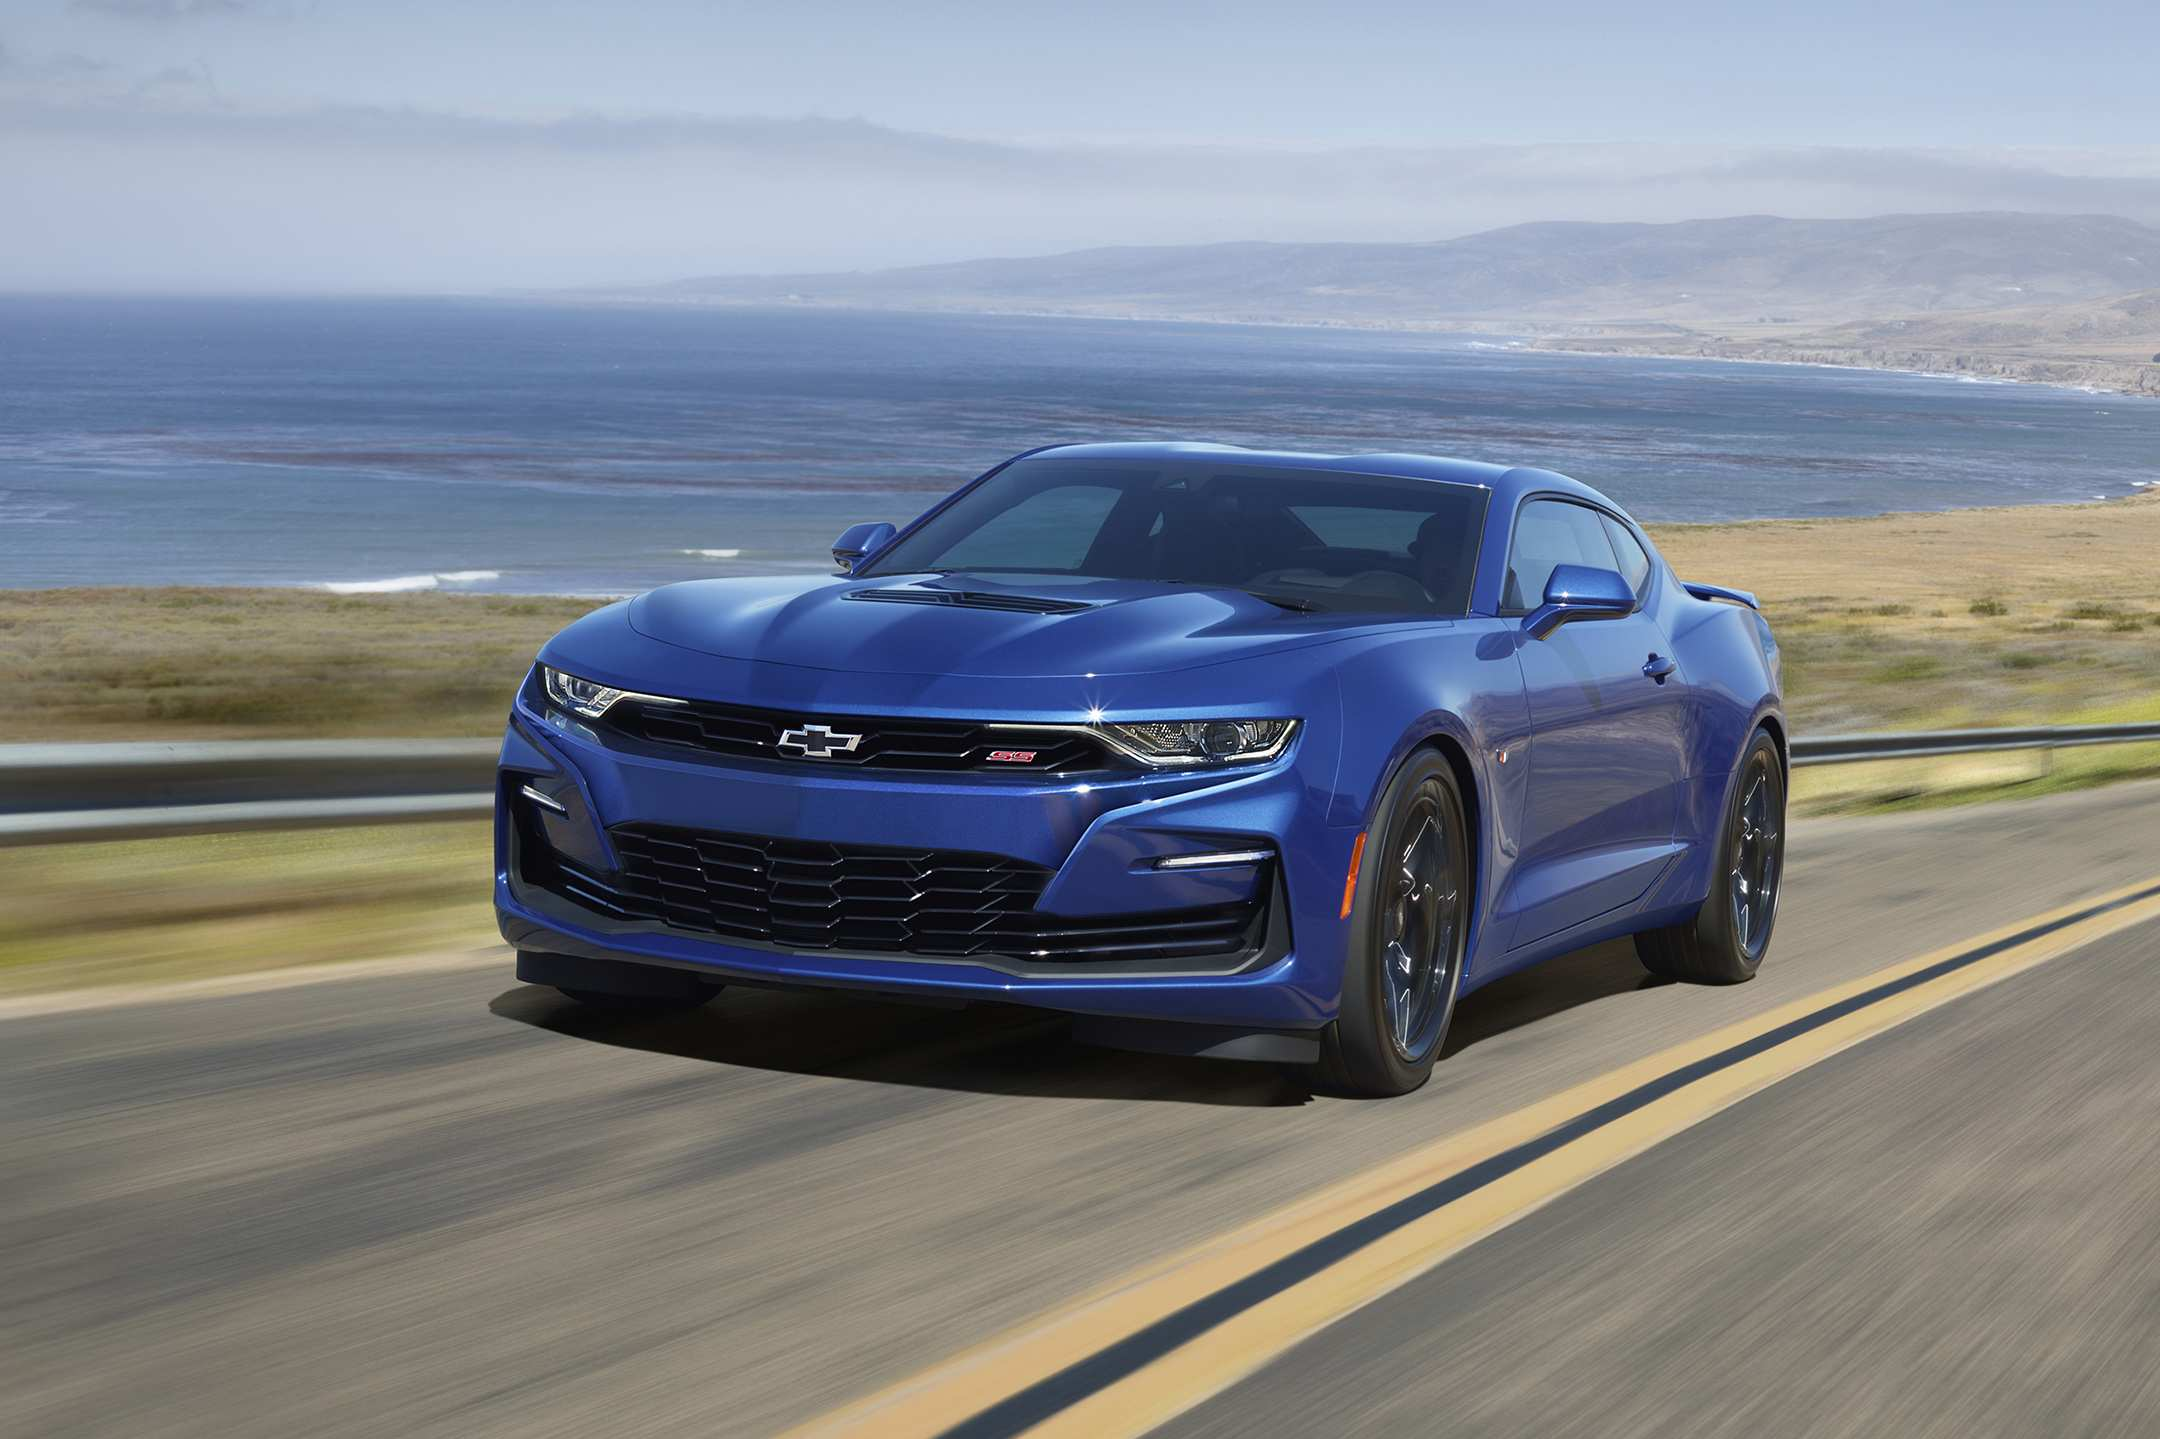 17 A Chevrolet New Models 2020 Release